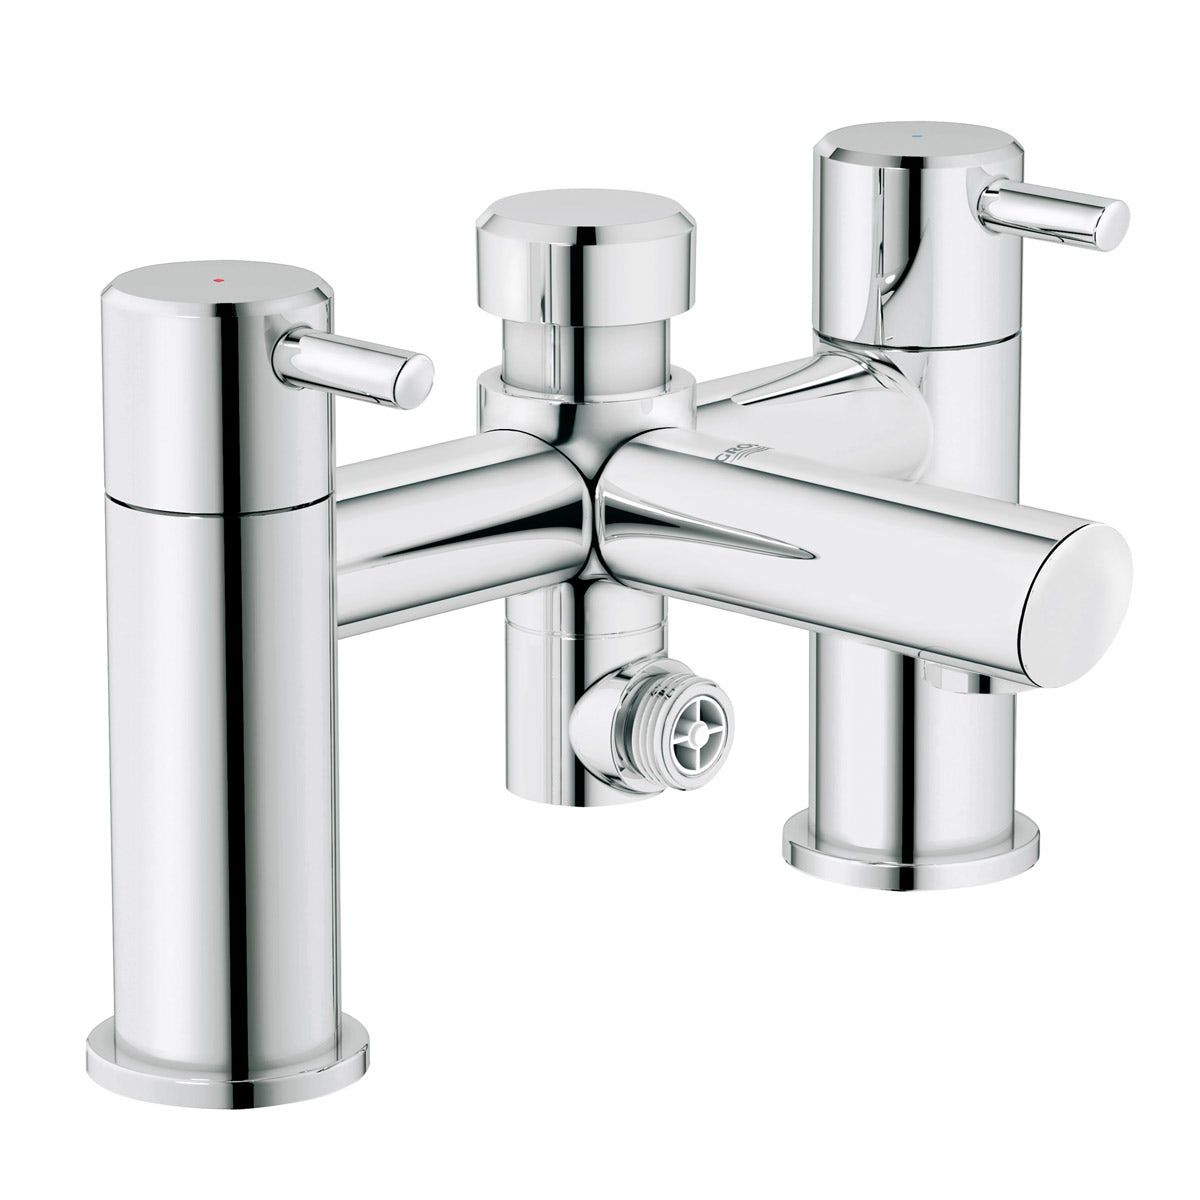 Click Here To Find Out More About Functional Without Compromising On Performance This Bath Shower M Shower Mixer Taps Bath Shower Mixer Taps Bath Shower Mixer